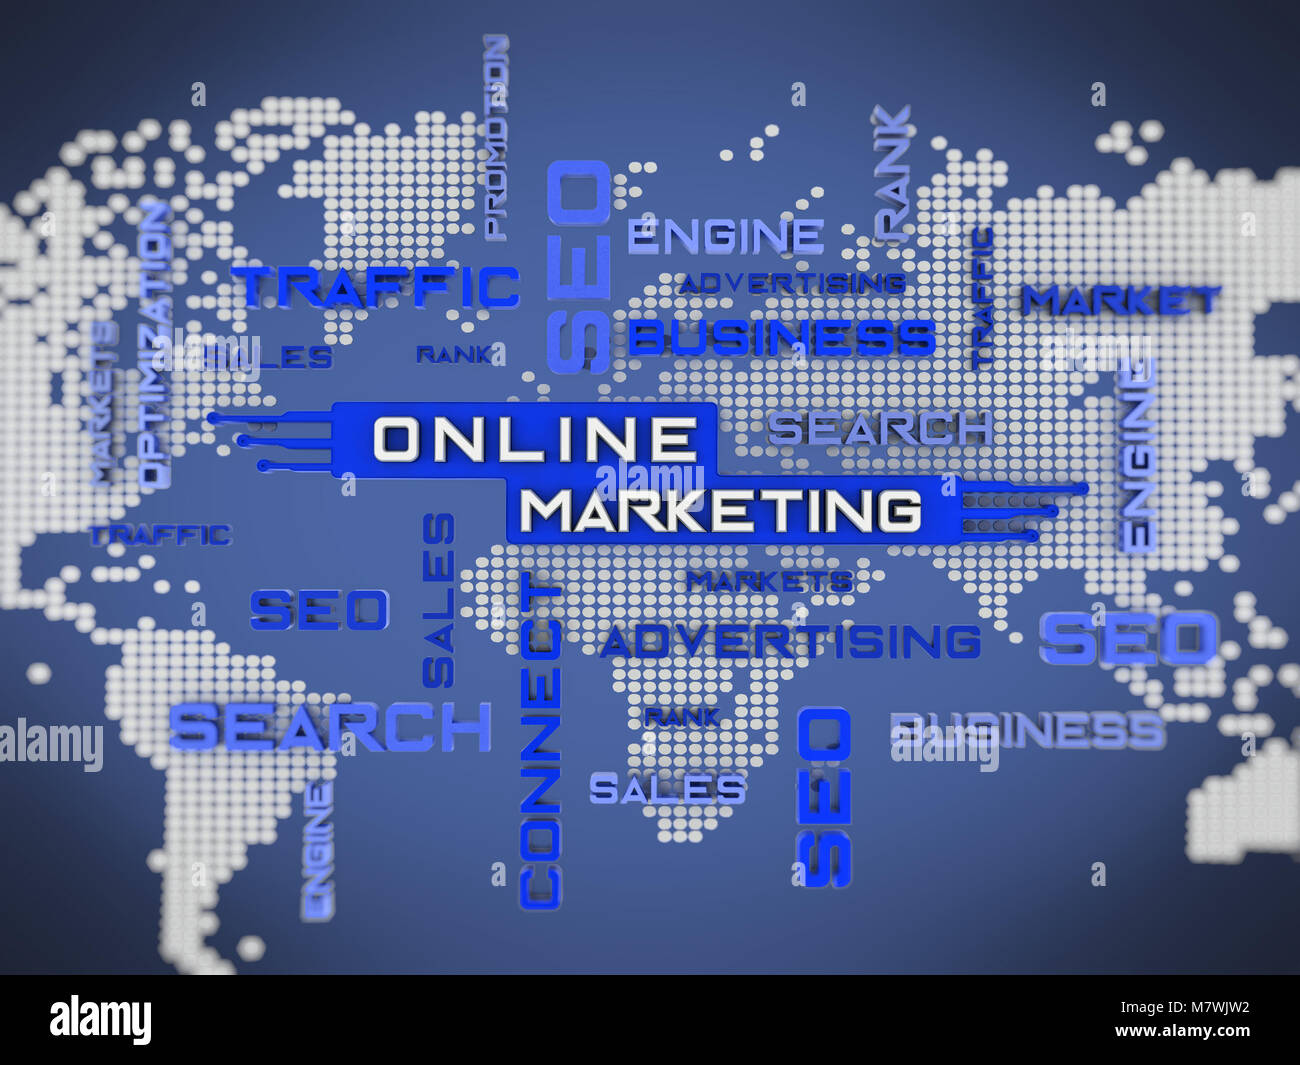 Online marketing crossword with world map background 3d stock photo online marketing crossword with world map background 3d illustration gumiabroncs Gallery